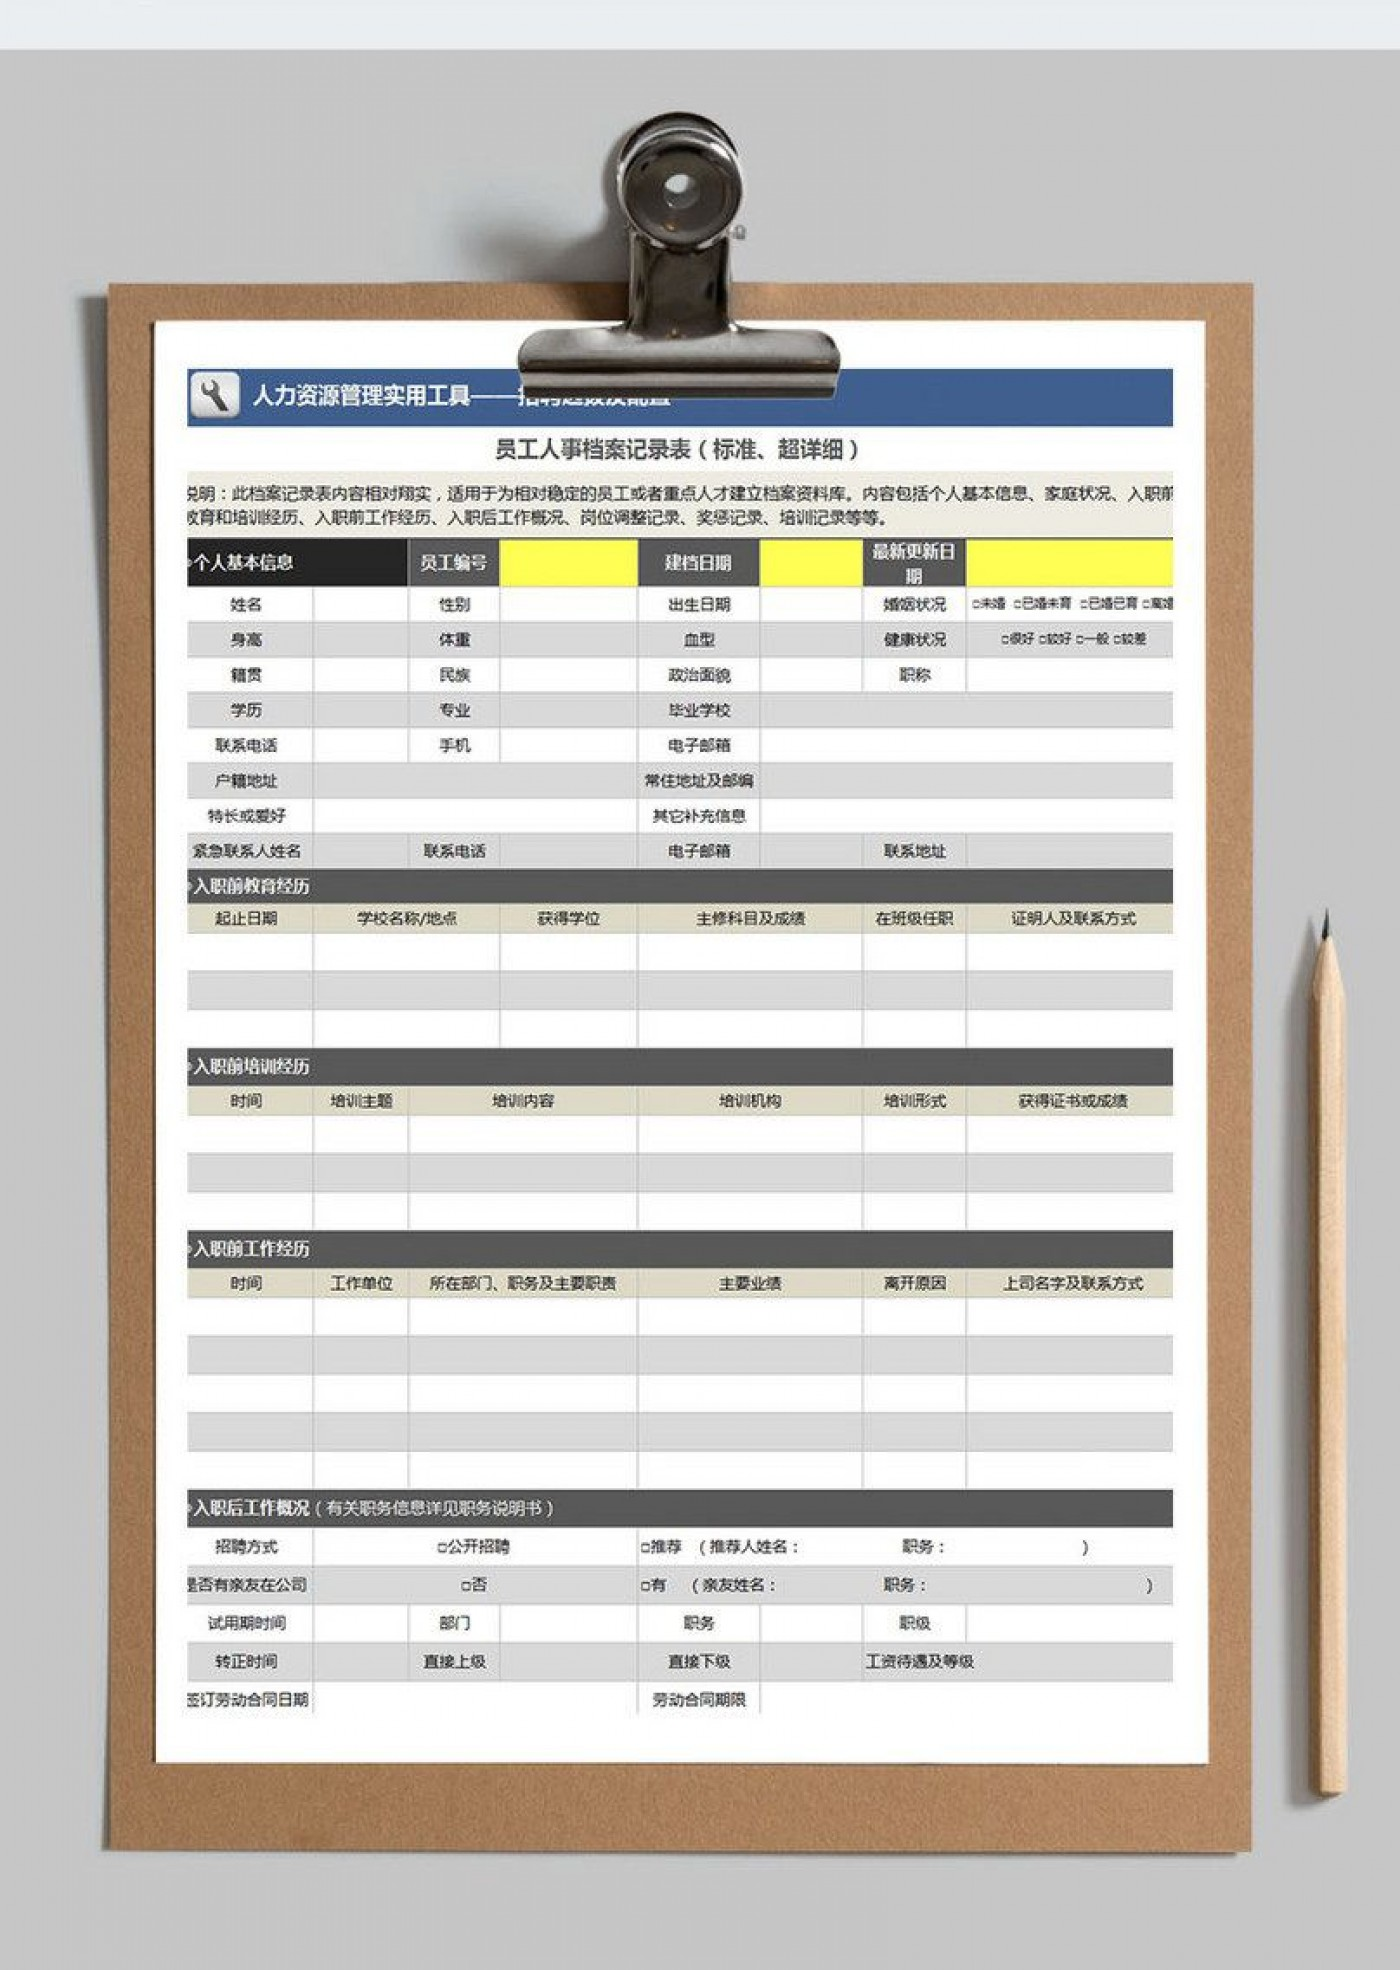 002 Unforgettable Employee Personnel File Template Picture  Uk Excel Form1400